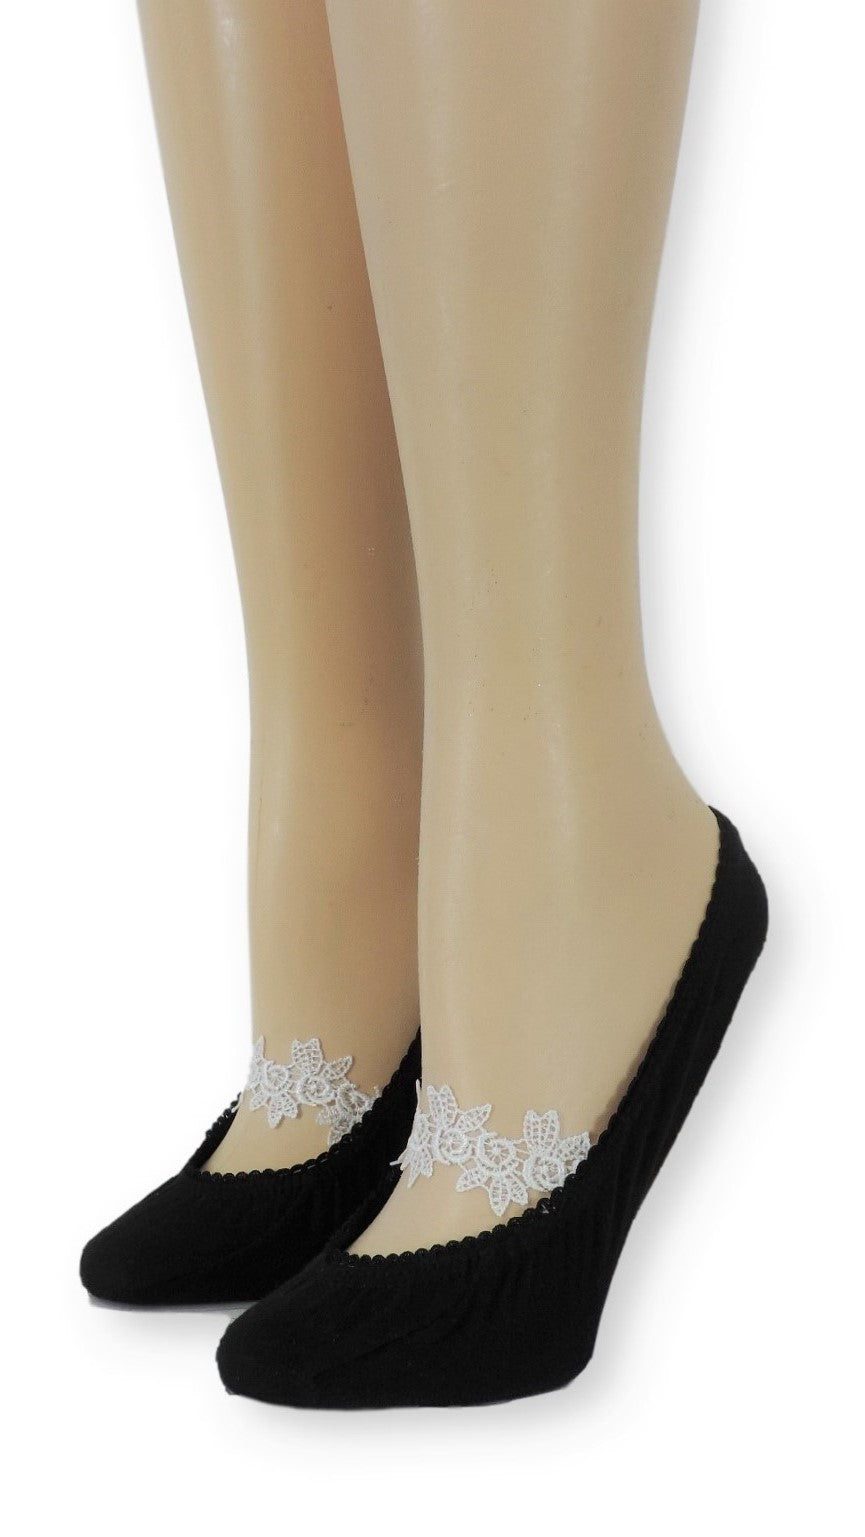 Ankle Socks with White Flower Lace - Global Trendz Fashion®